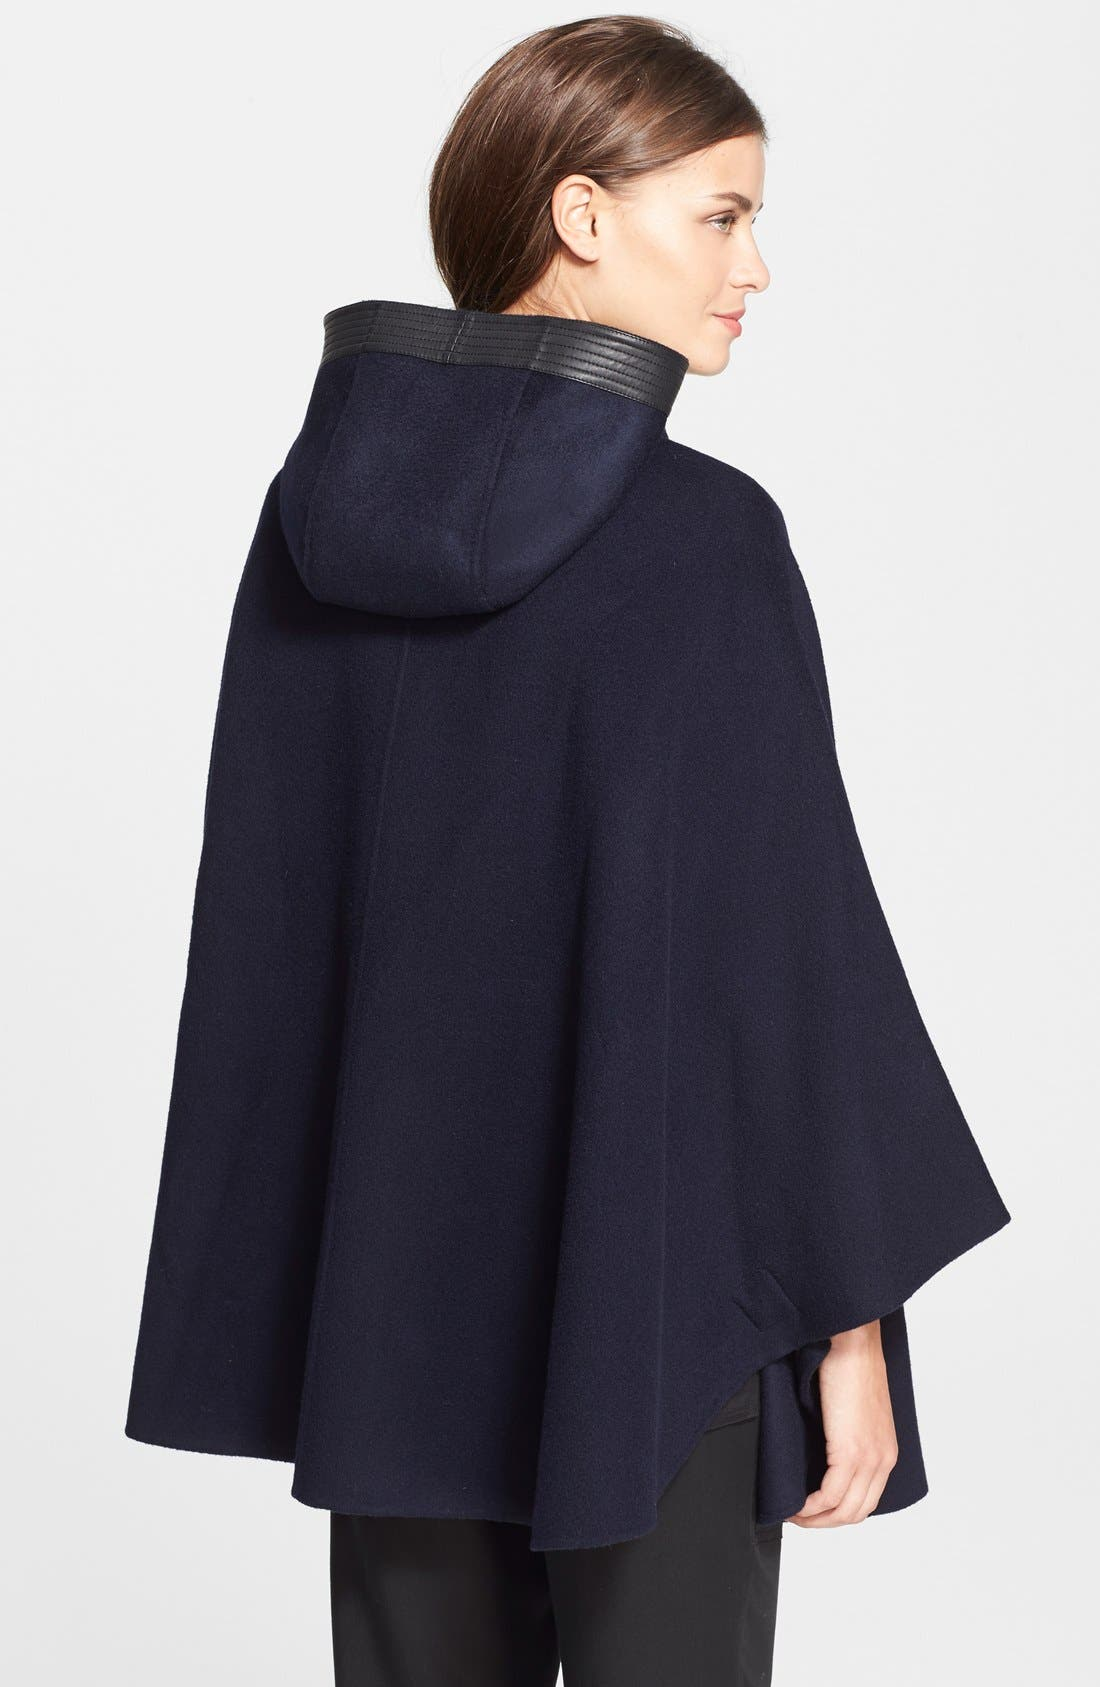 Hooded Wool Blend Cape with Leather Trim,                             Alternate thumbnail 2, color,                             Coastal